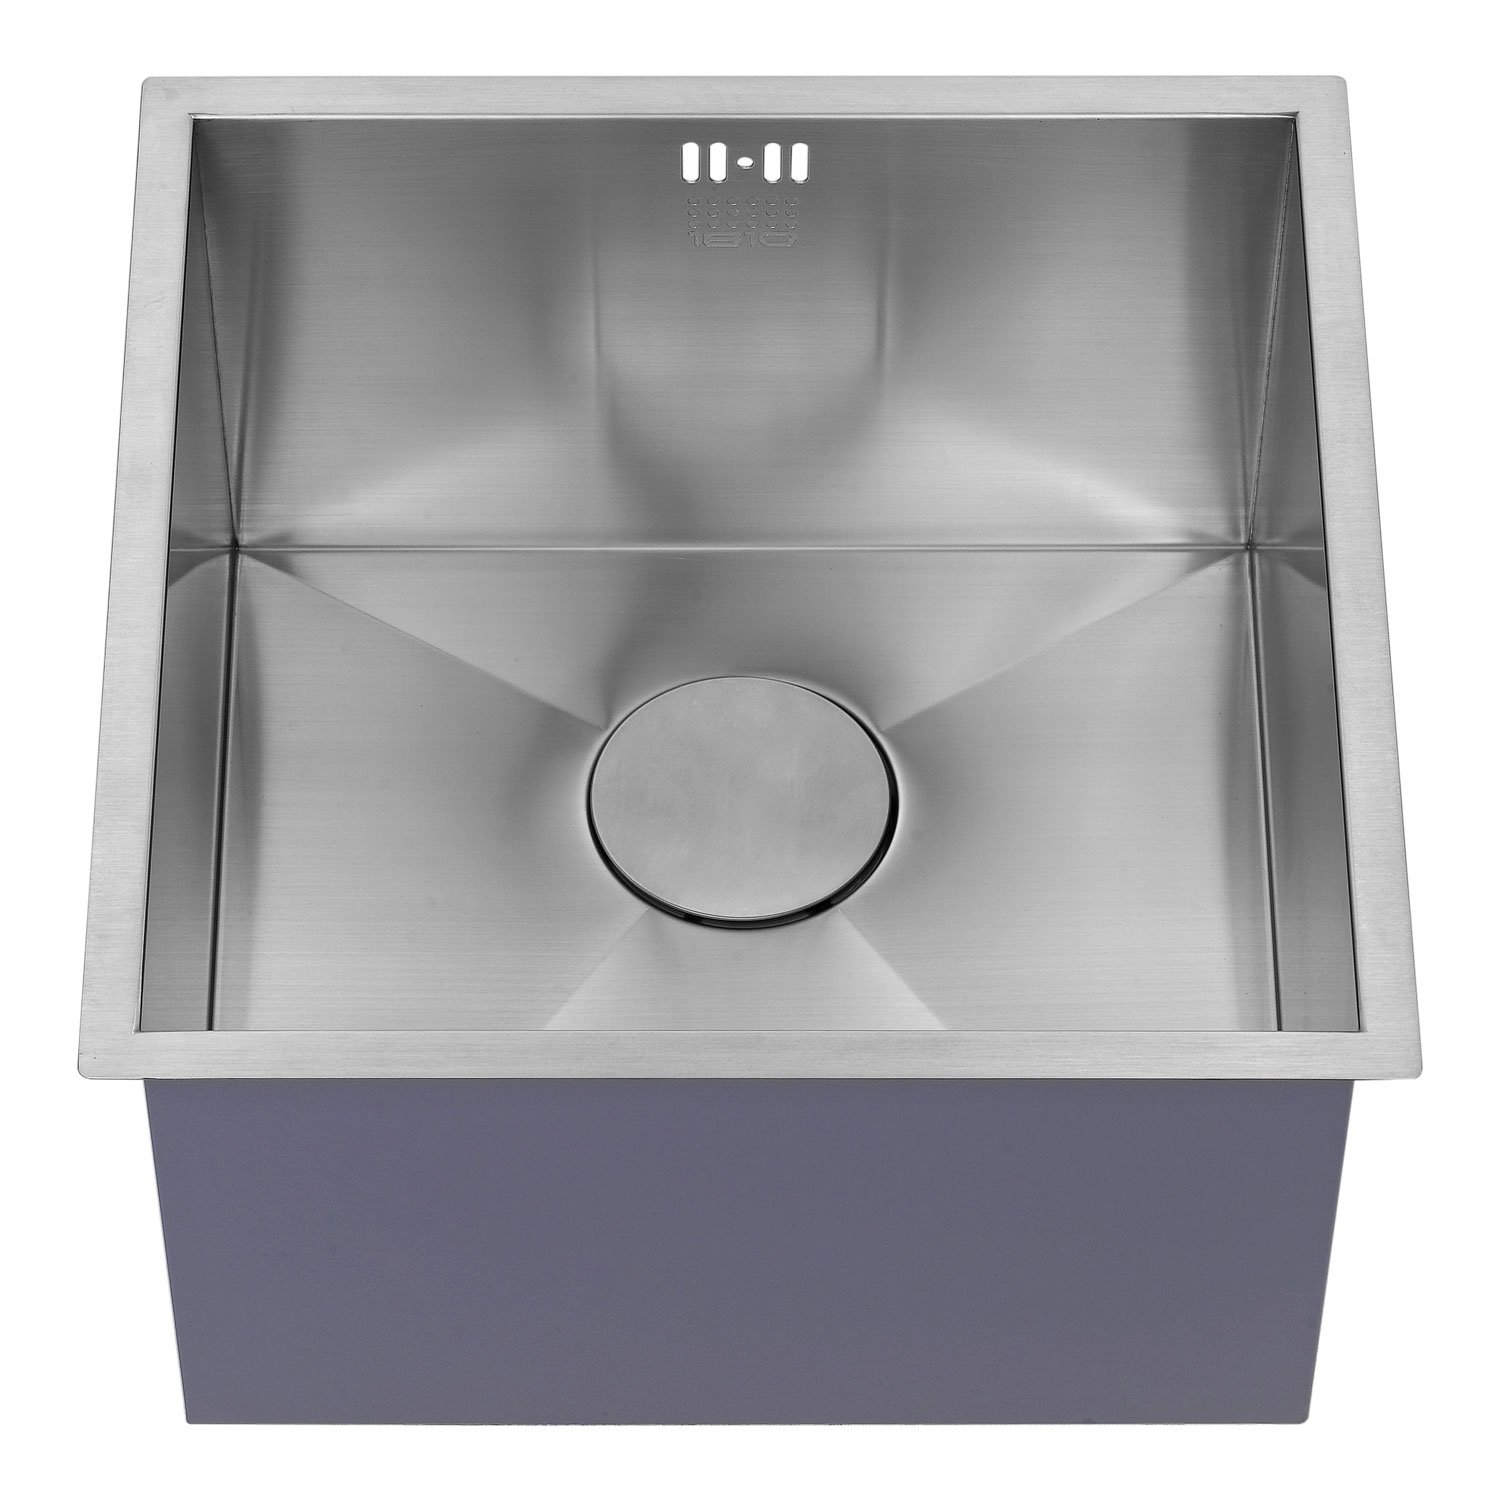 The 1810 Company Zenuno 400U Deep 1.0 Bowl Kitchen Sink - Stainless Steel-1